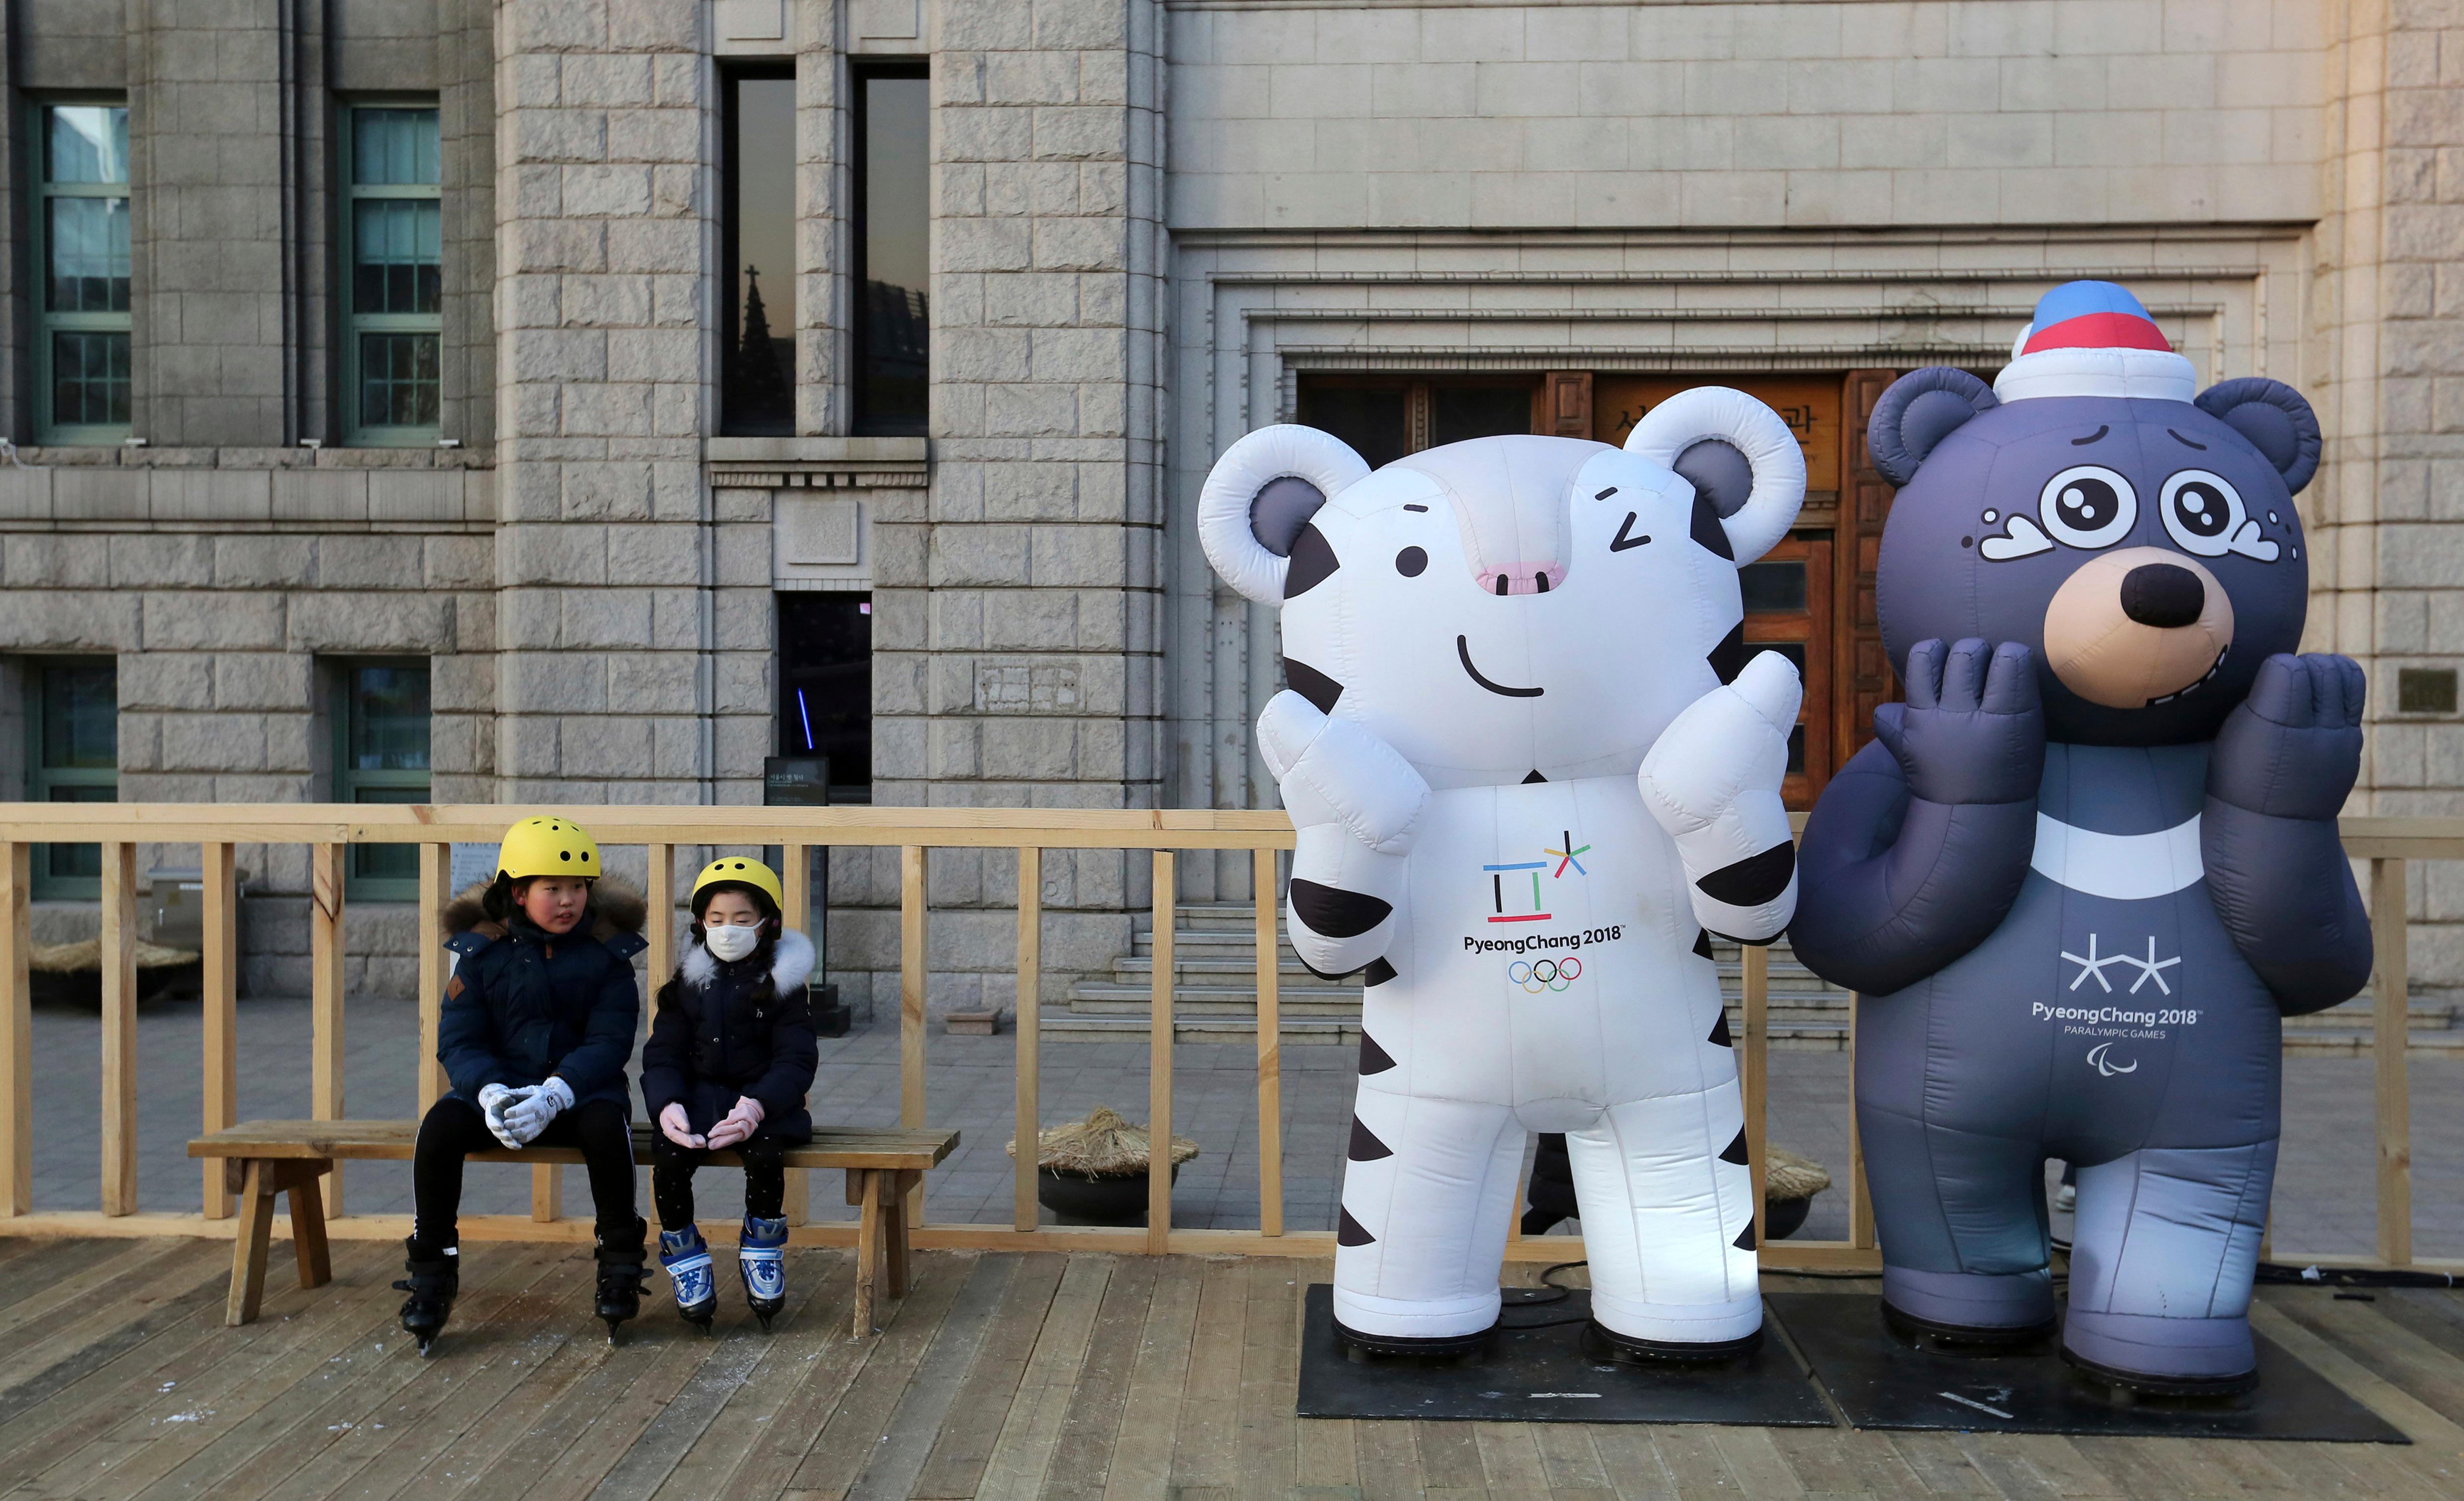 Children sit next to the 2018 Pyeongchang Winter Olympic Games' official mascots, a white tiger Soohorang, for the Olympics, and black bear Bandabi, right, for Paralympics, near Seoul Plaza Ice Rink in Seoul, South Korea, Tuesday, Jan. 2, 2018. South Korea on Tuesday offered high-level talks with rival North Korea to find ways to cooperate on next month's Winter Olympics in the South. (AP Photo/Ahn Young-joon)